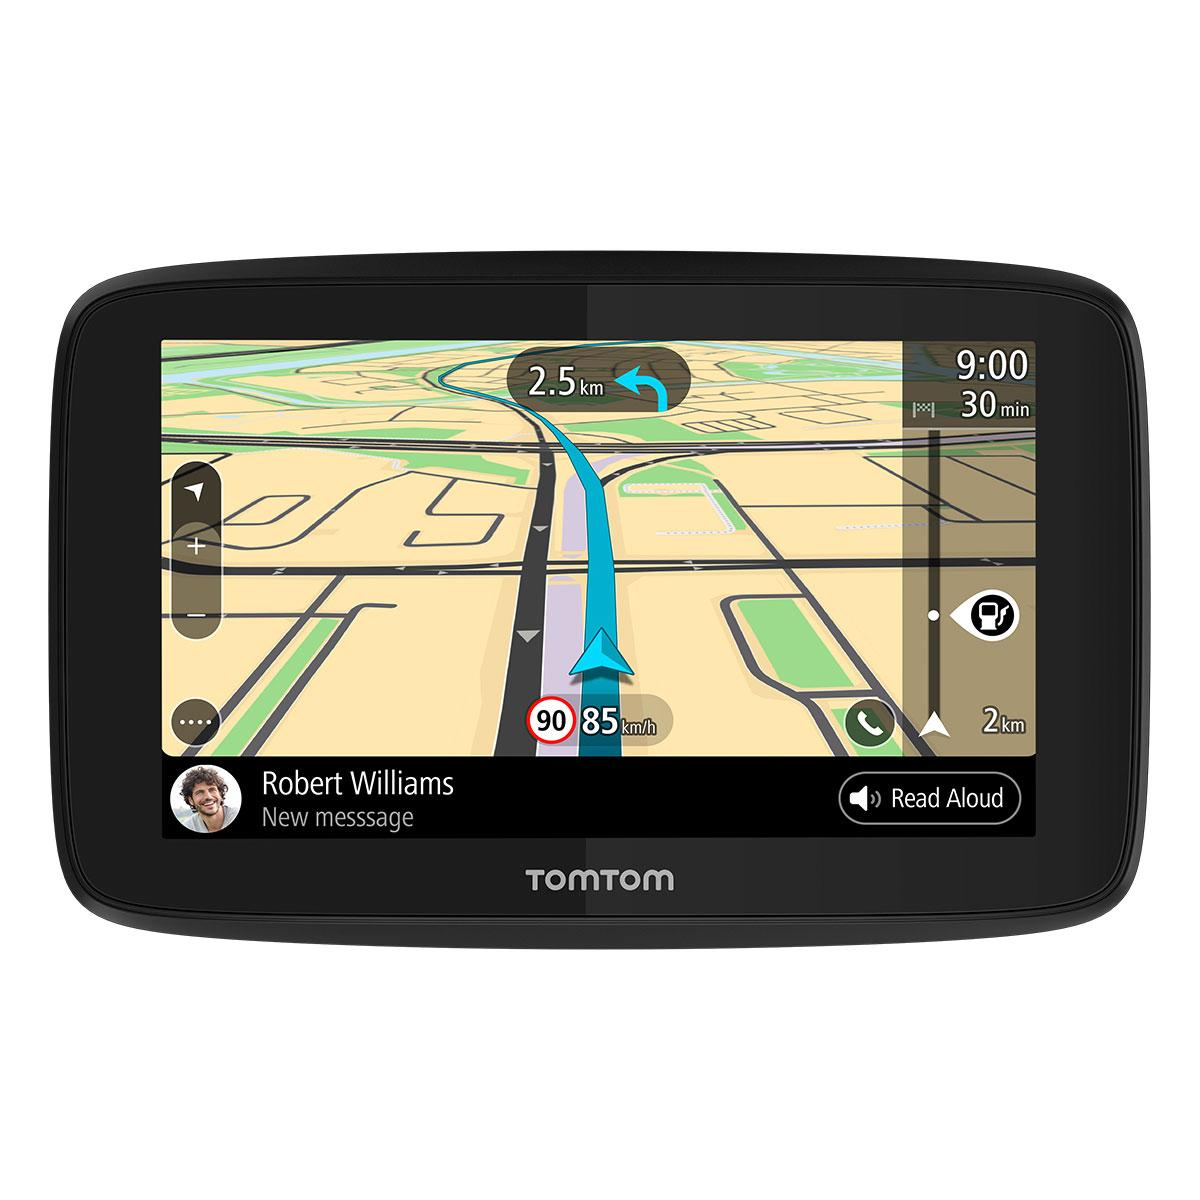 tomtom gps poids lourds go professional 6200 6 pouces cartographie europe 48 vie. Black Bedroom Furniture Sets. Home Design Ideas